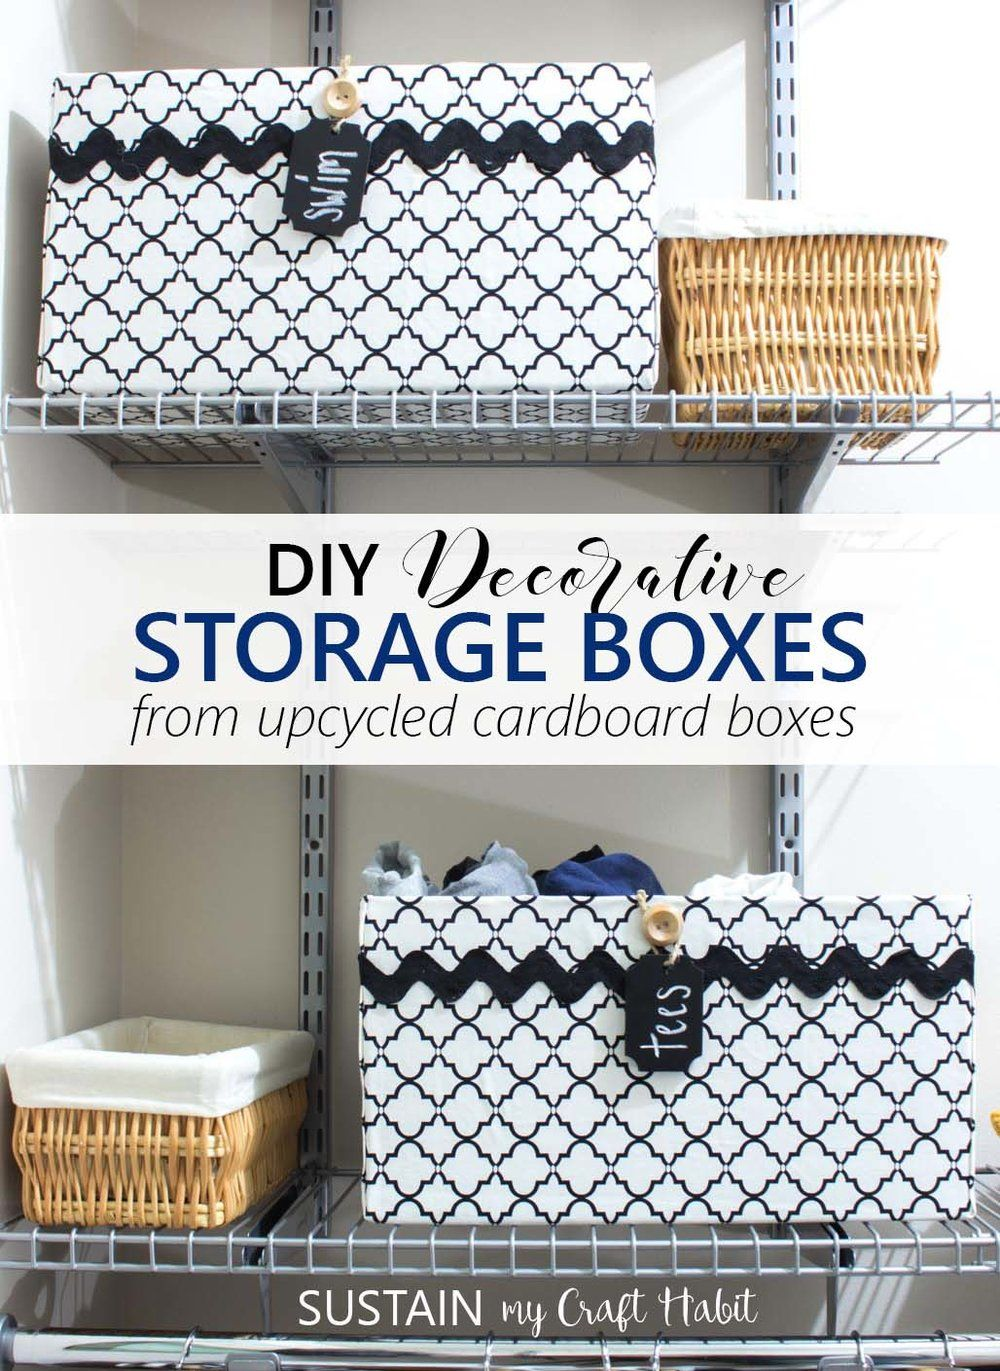 Diy Storage Container Ideas Part - 27: DIY Upcycled Cardboard Box Storage Bins | Closet Organizing Ideas | How To  Make Black And